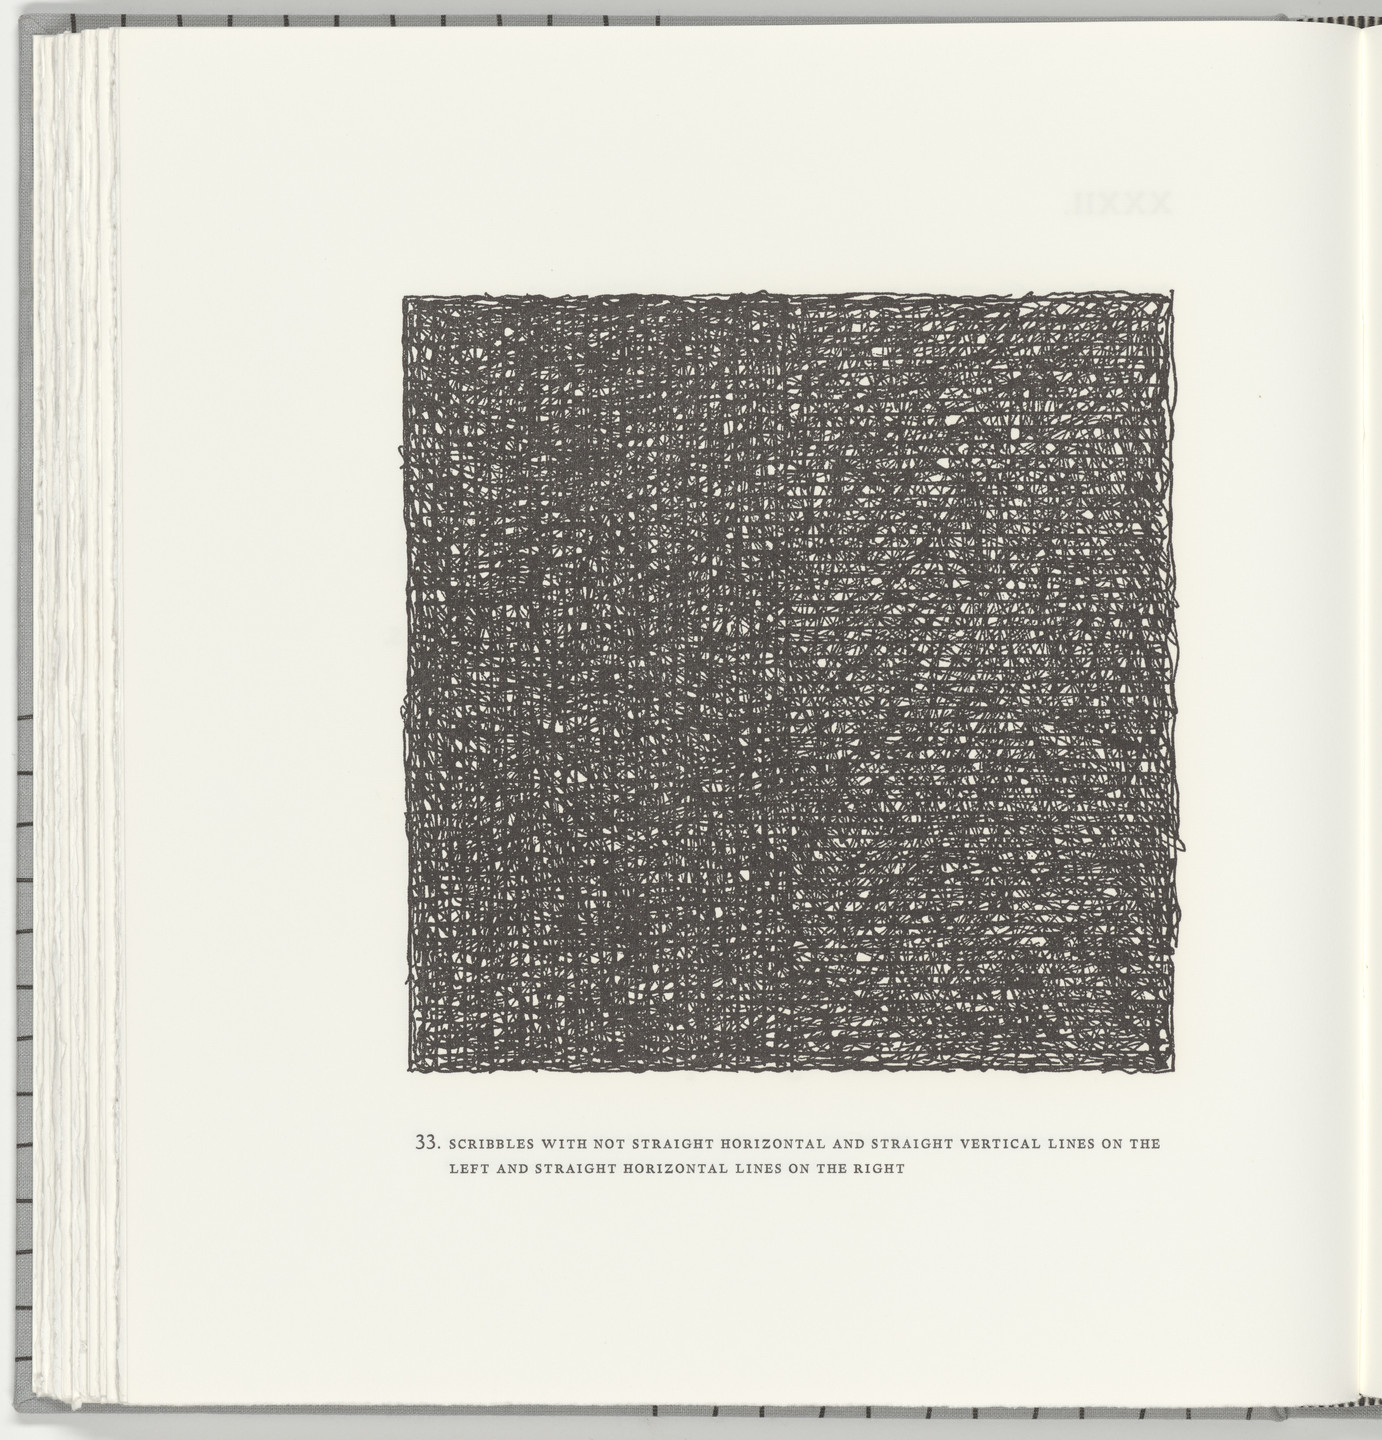 Sol LeWitt. Scribbles with Not Straight Horizontal and Straight Vertical Lines on the Left and Straight Horizontal Lines on the Right (plate 33) from Squarings. 2003